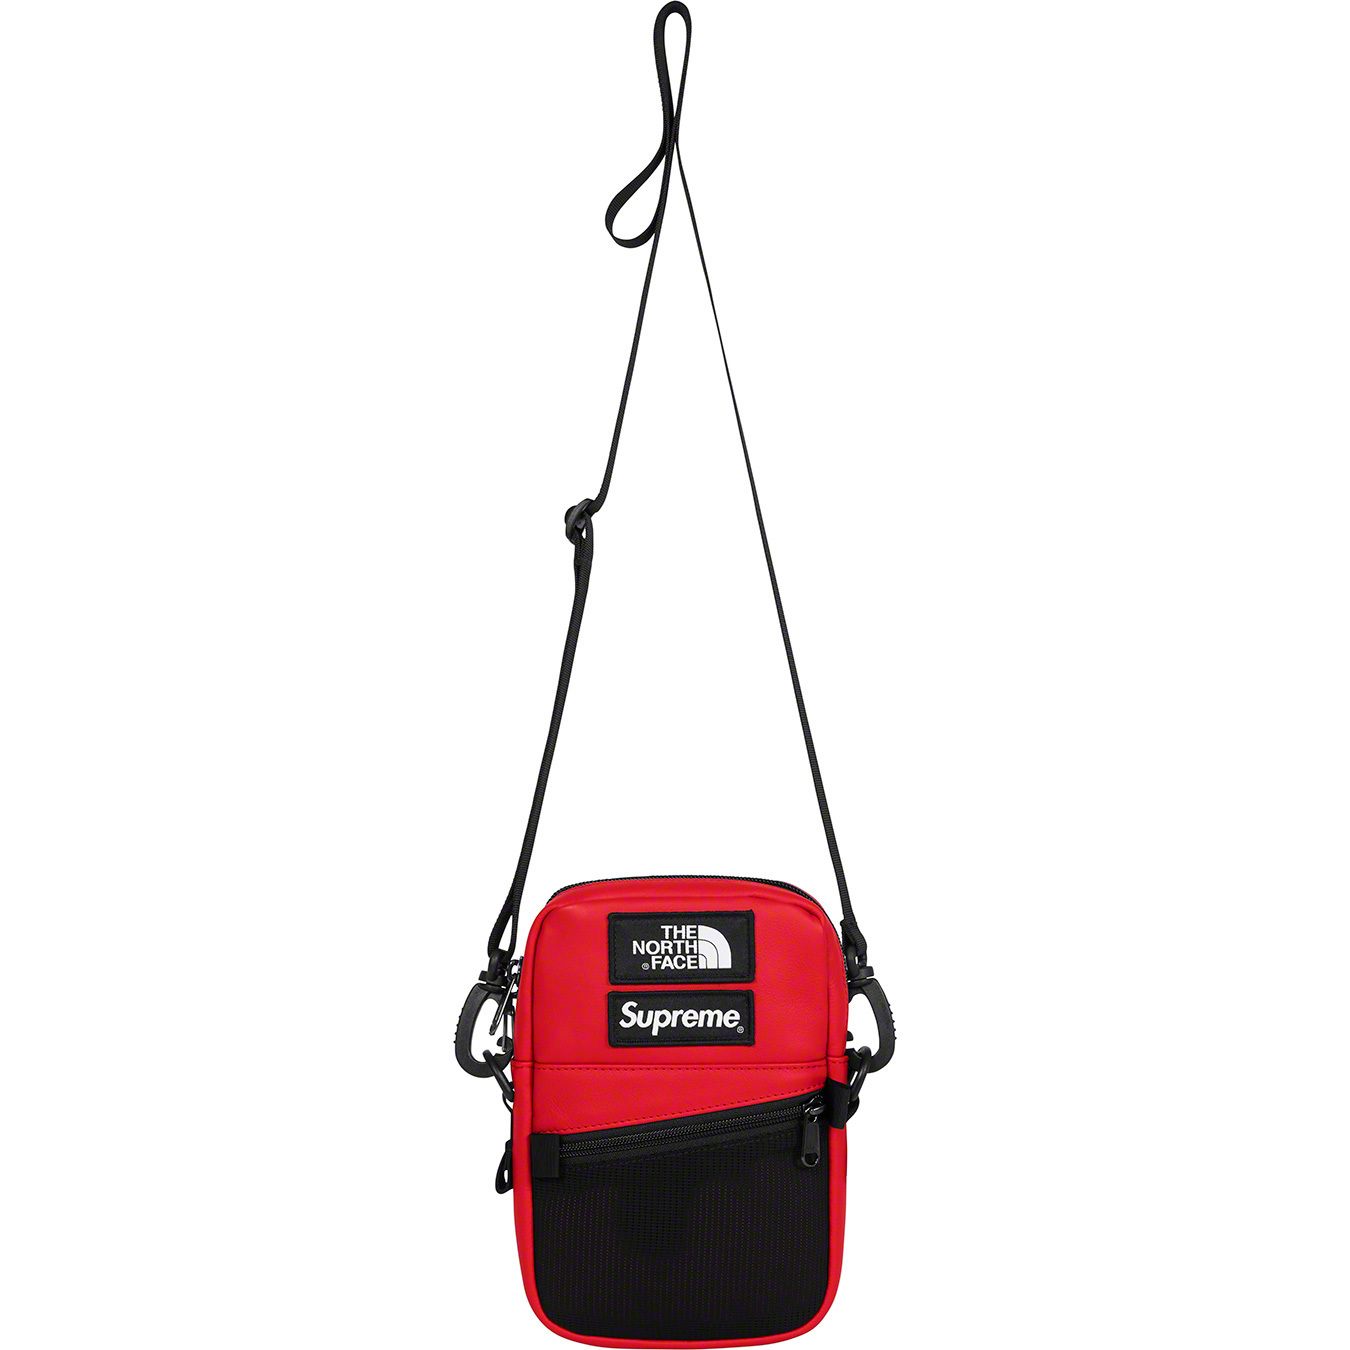 supreme-the-north-face-leather-mountain-shoulder-bag-2018aw-release-20181020-week9